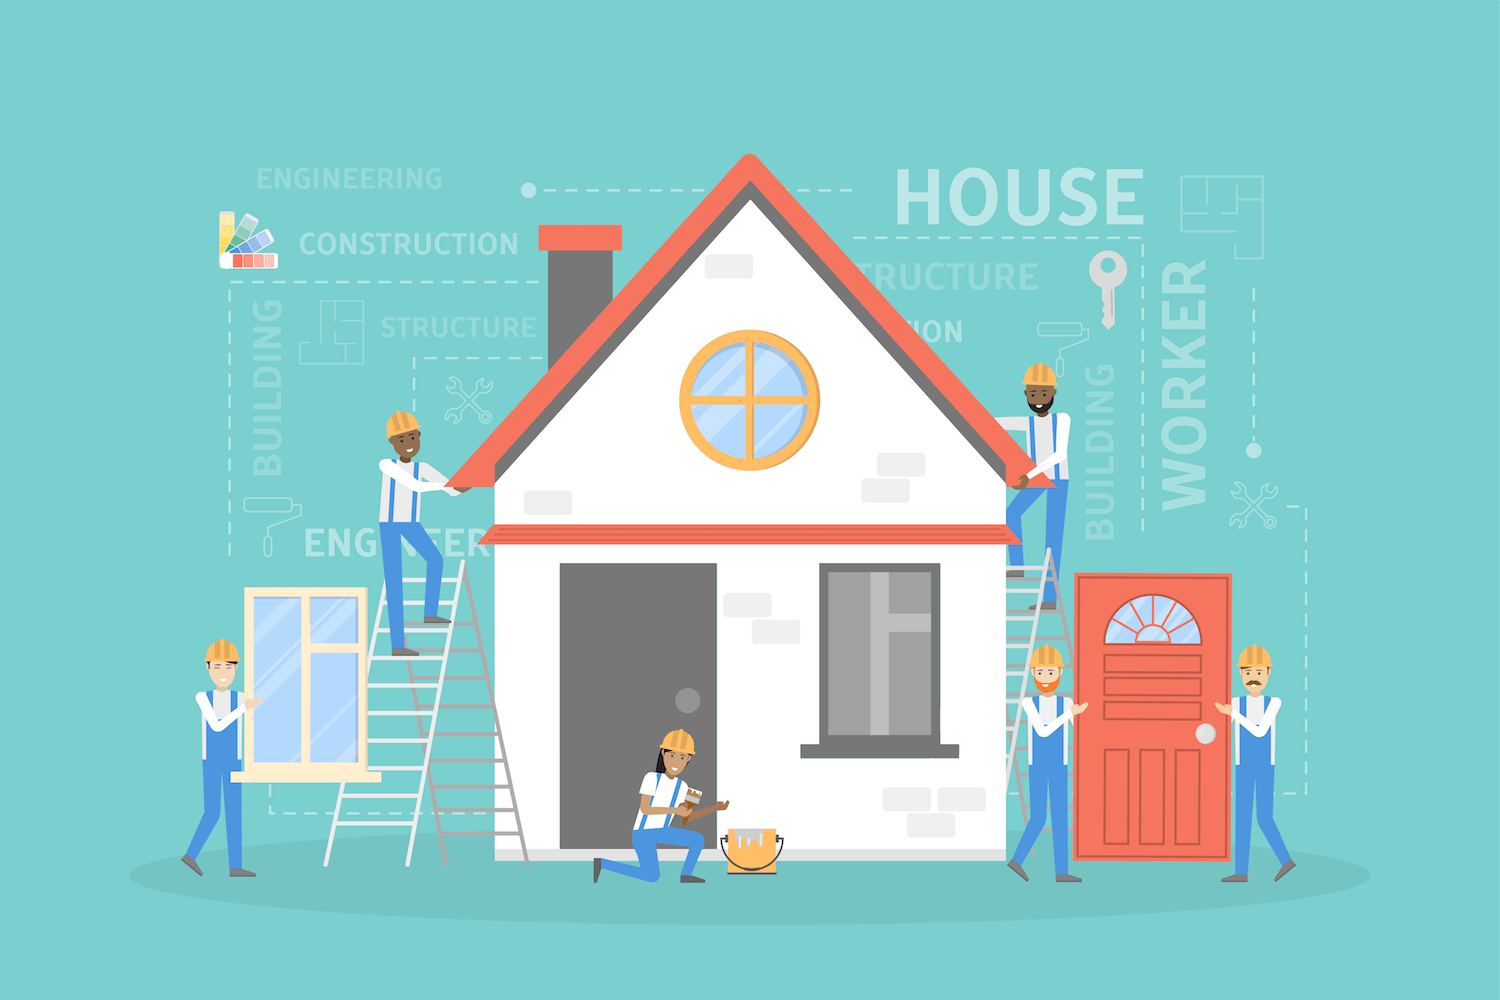 Upgrade to a Healthier Home: New Construction